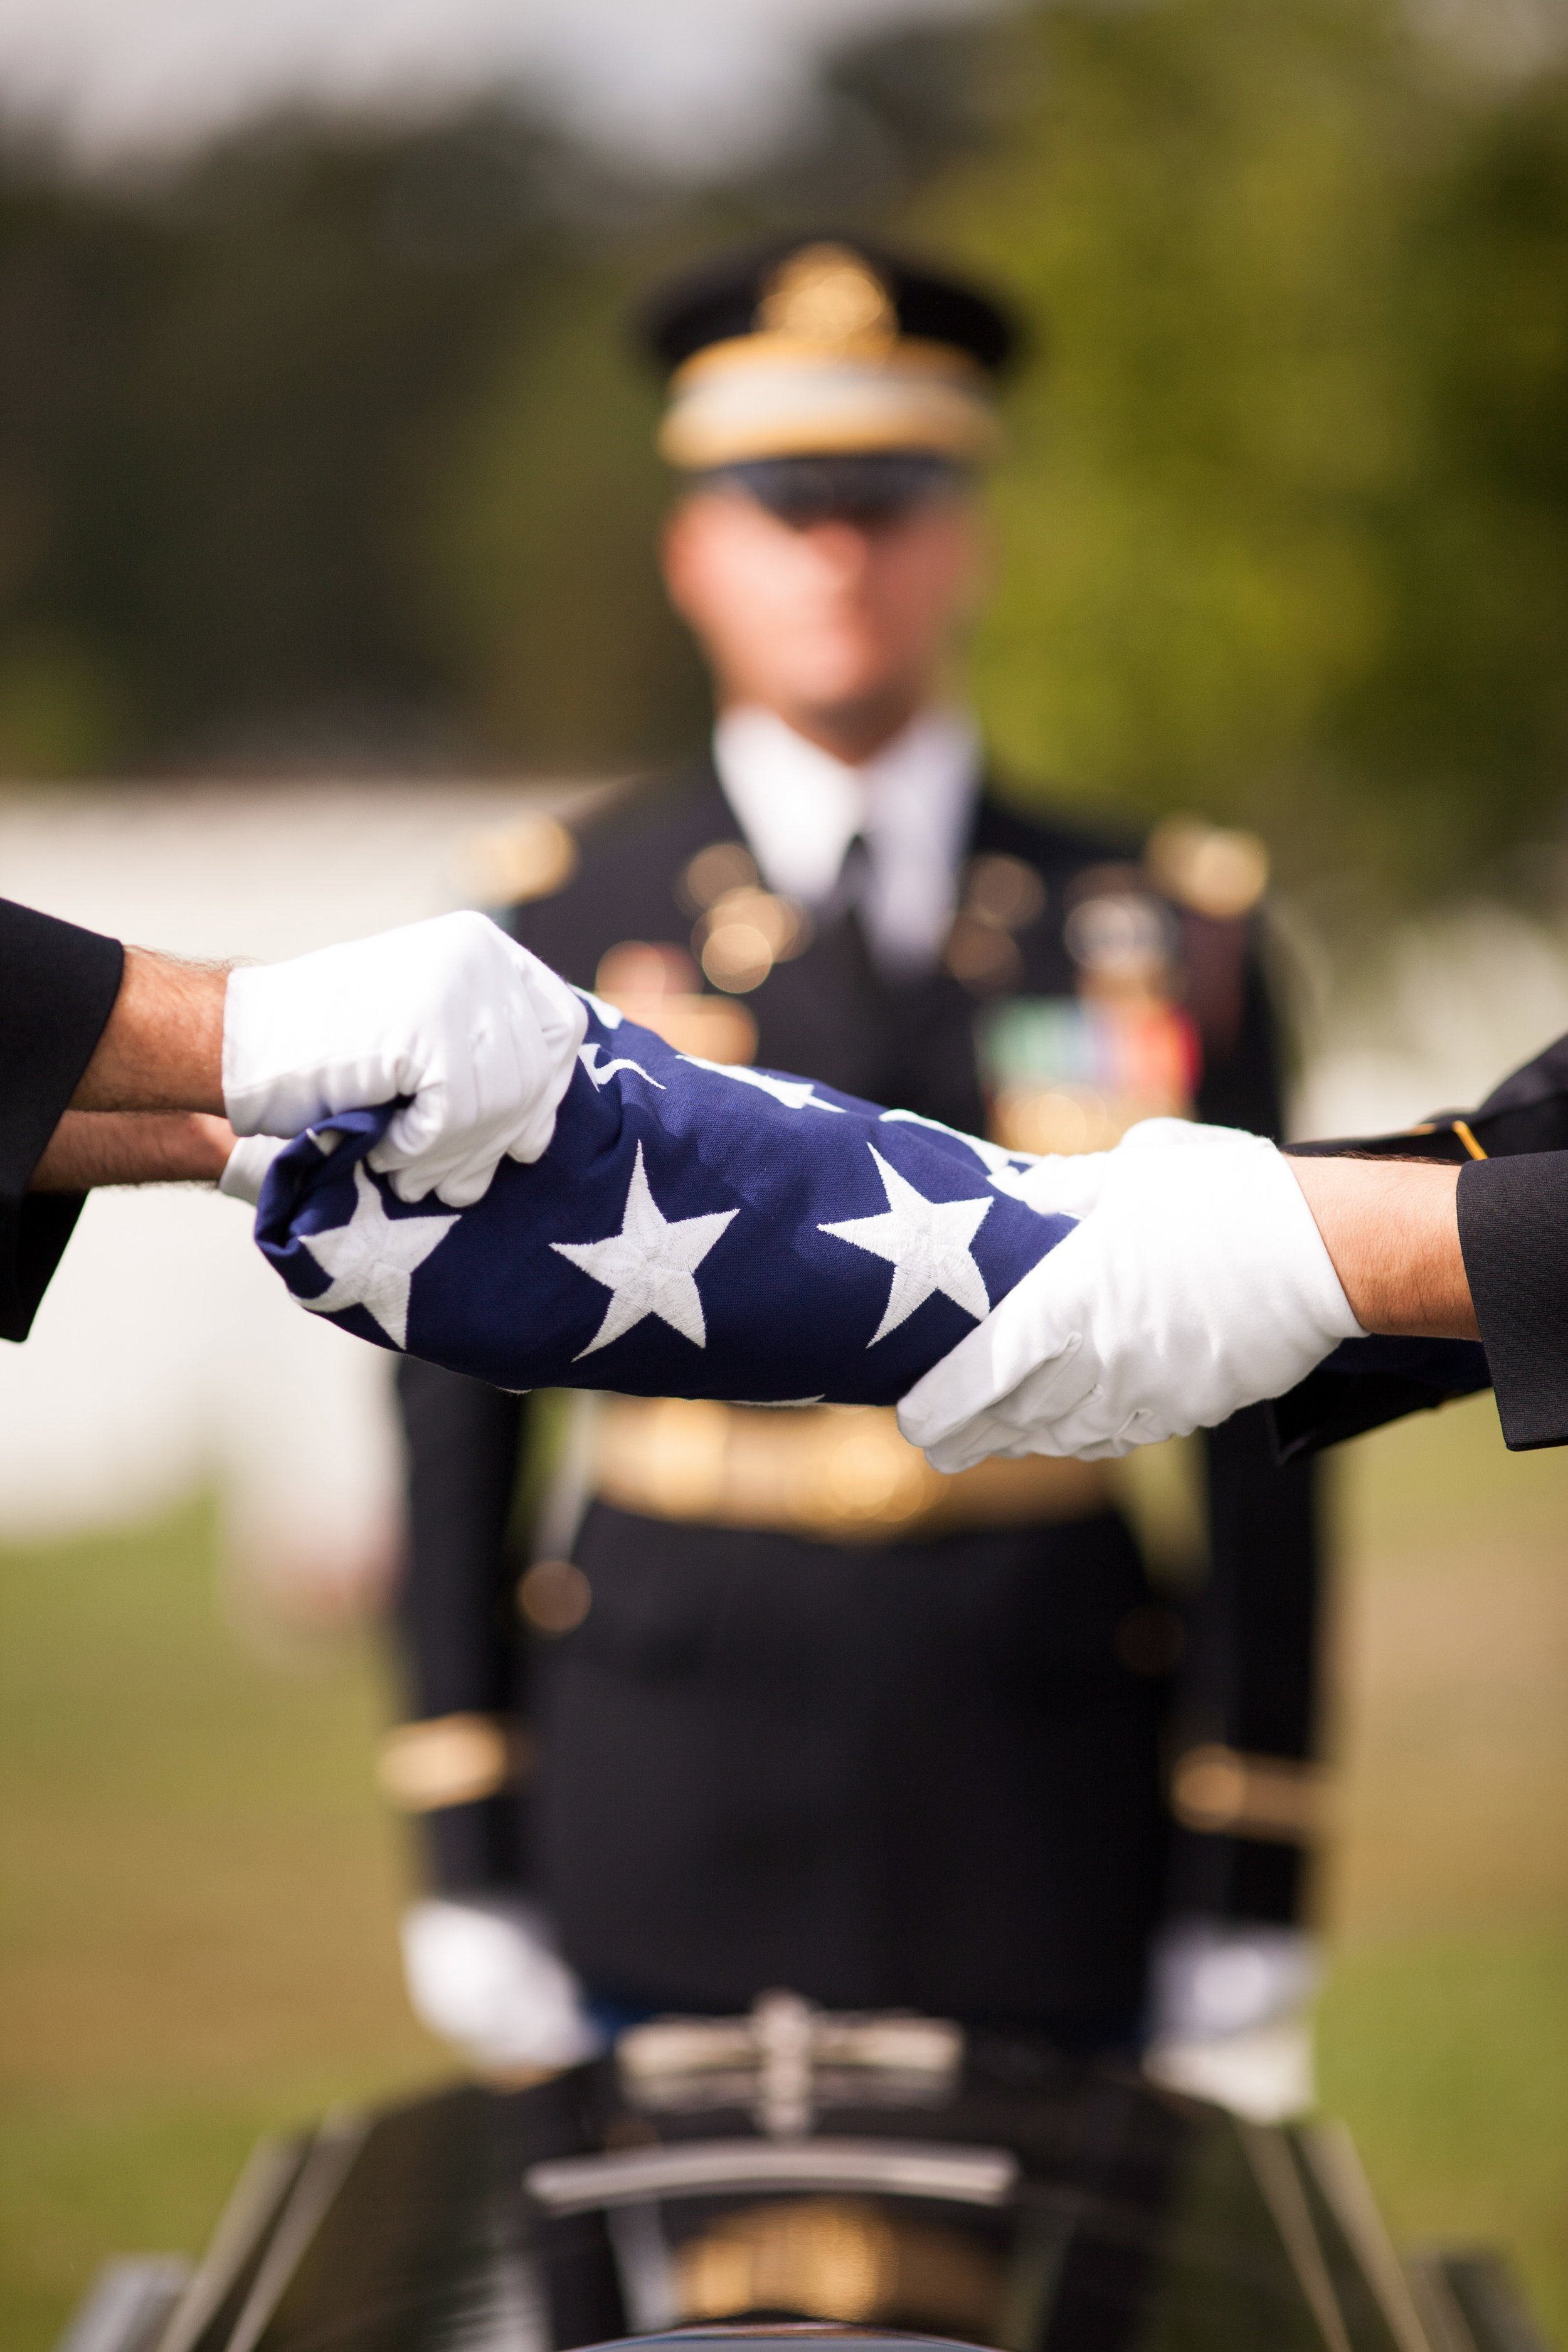 WASHINGTON D.C., September 27, 2017-- Two soldiers finish folding the flag that draped the casket of this fallen brother-in-arms. Of all the military ceremonies I have witnessed in my lifetime, none have the carefulness and precision that is displayed so profoundly in these burials.  Photo by Taylor Mickal